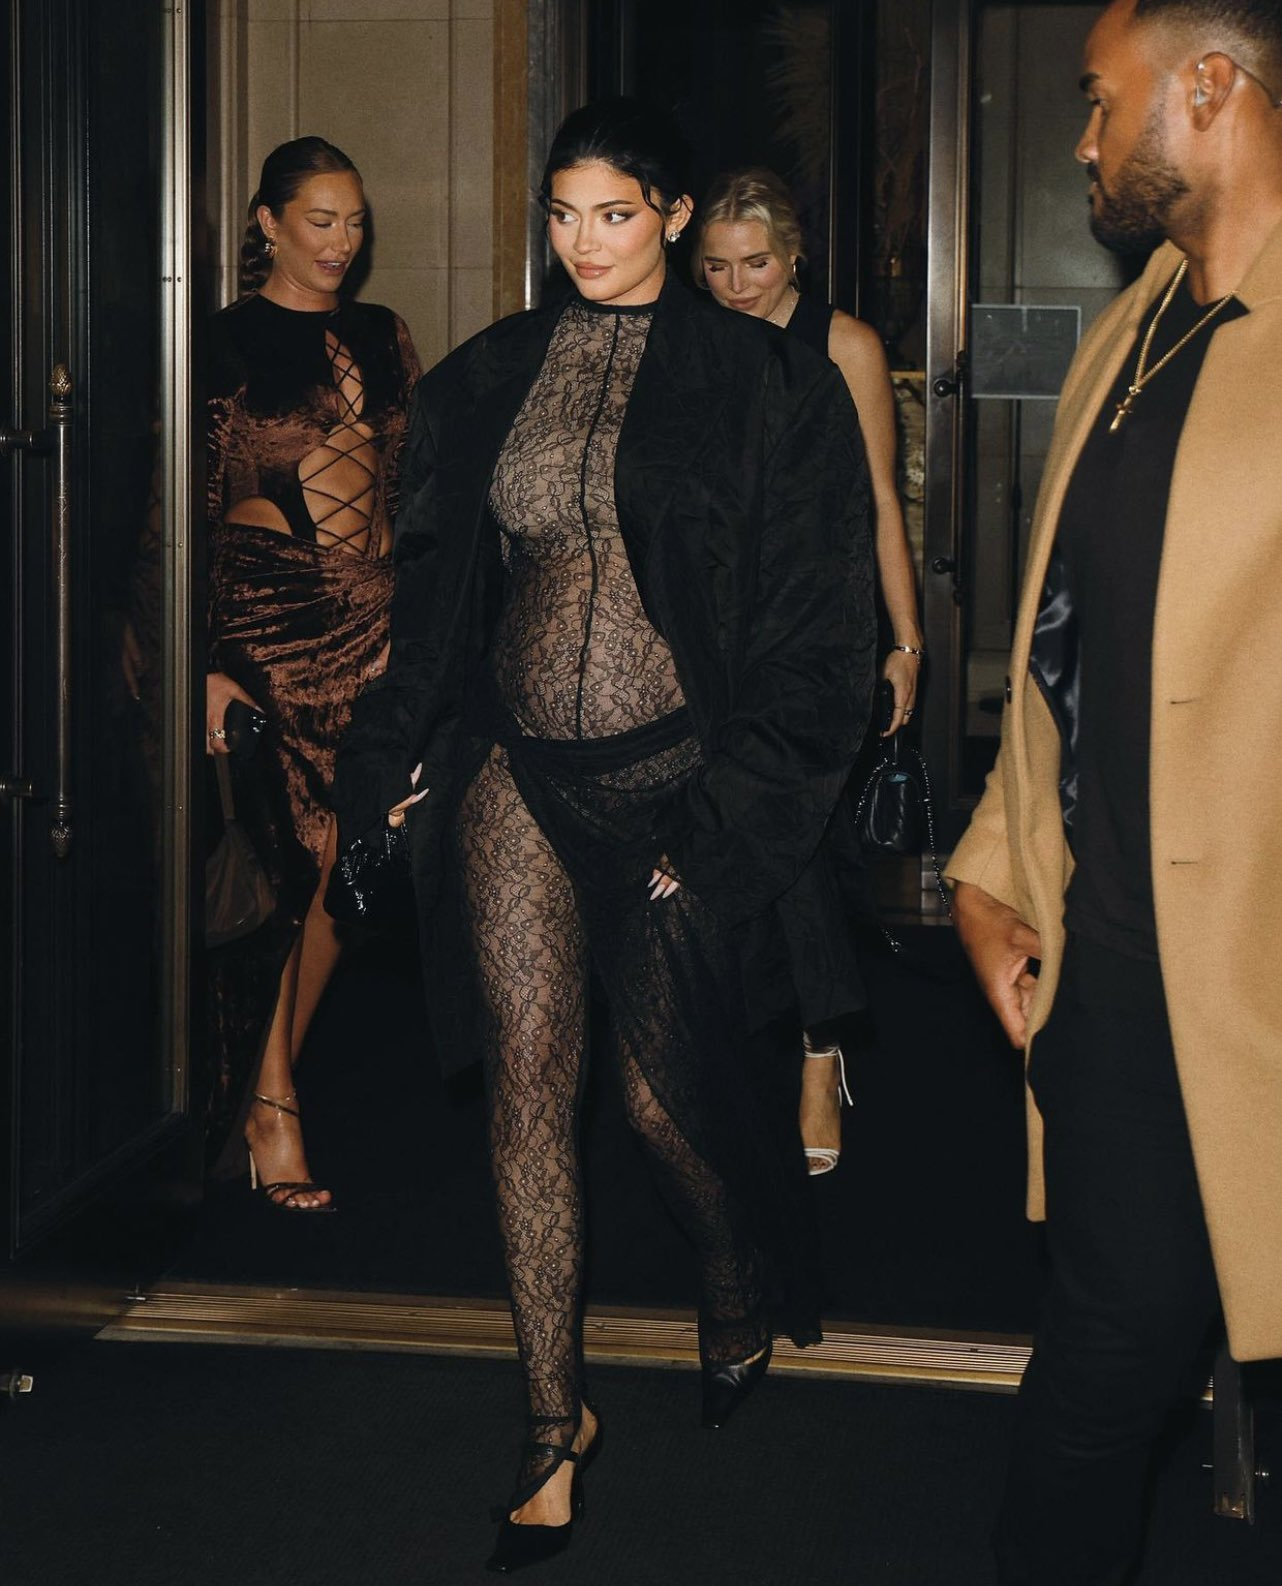 Kylie Jenner Shows Off Her Baby Bump in Racy Lace Look During NYC Night Out